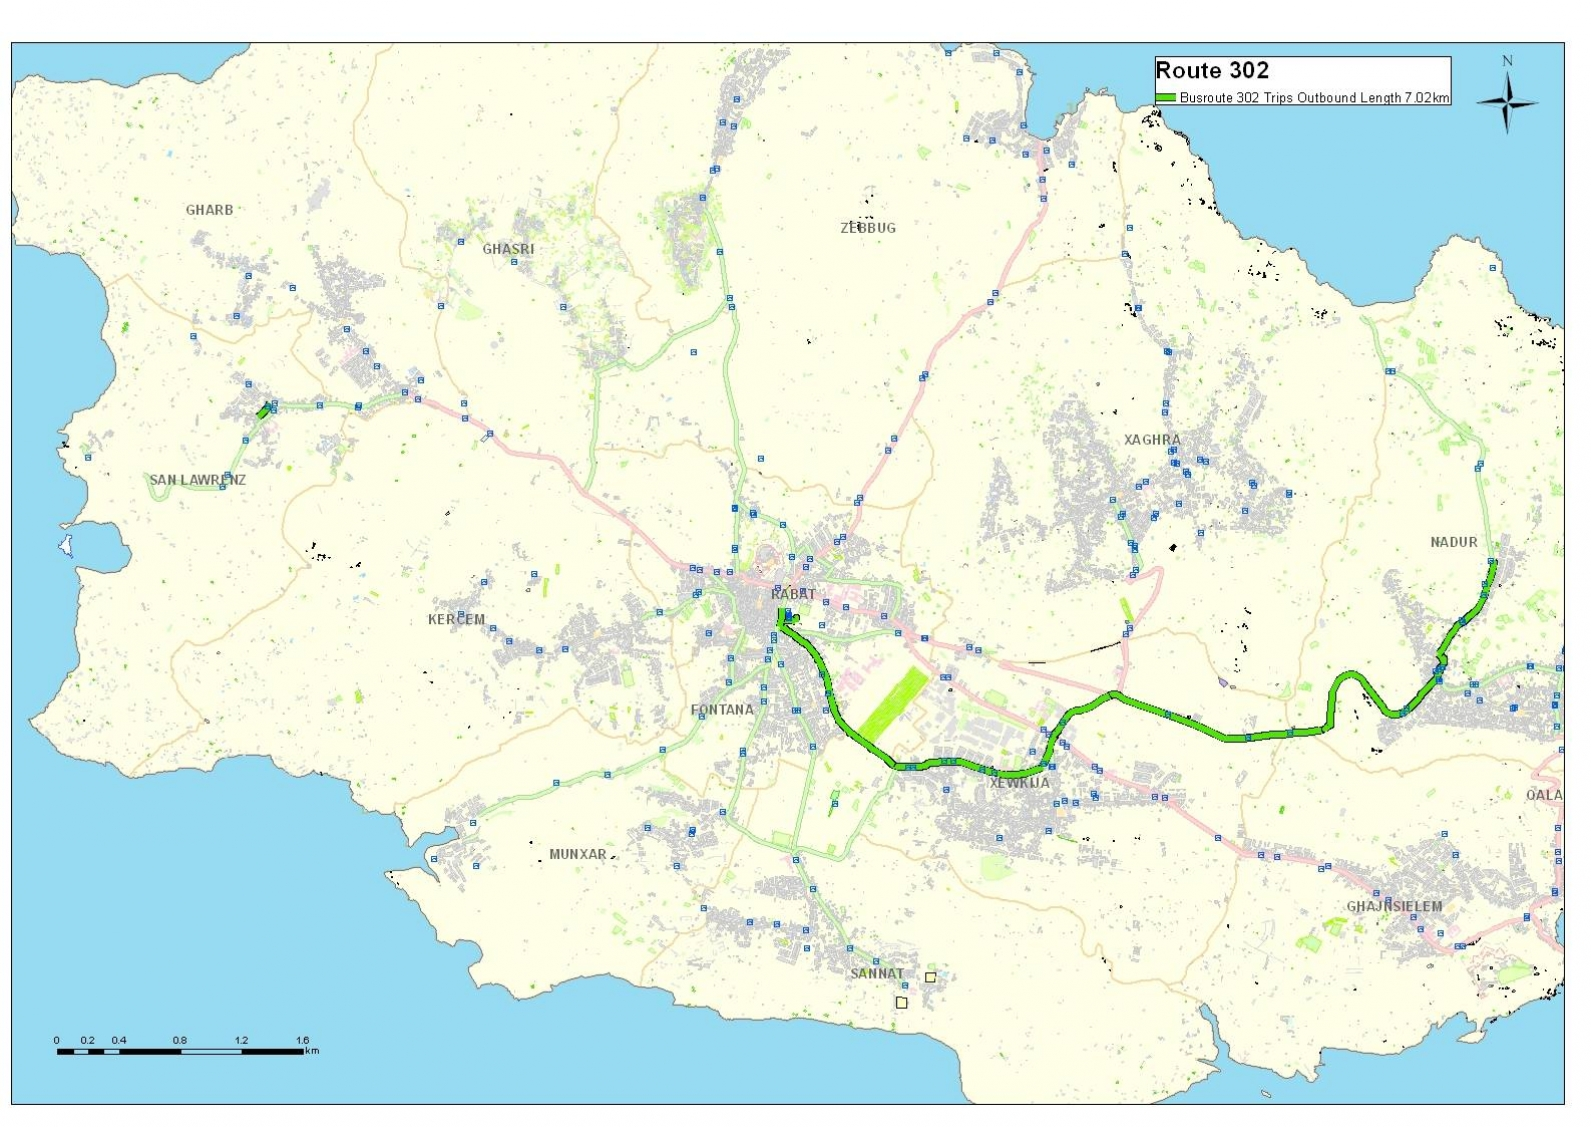 Land-current-network-routes-and-schedules-Gozo-6jpg